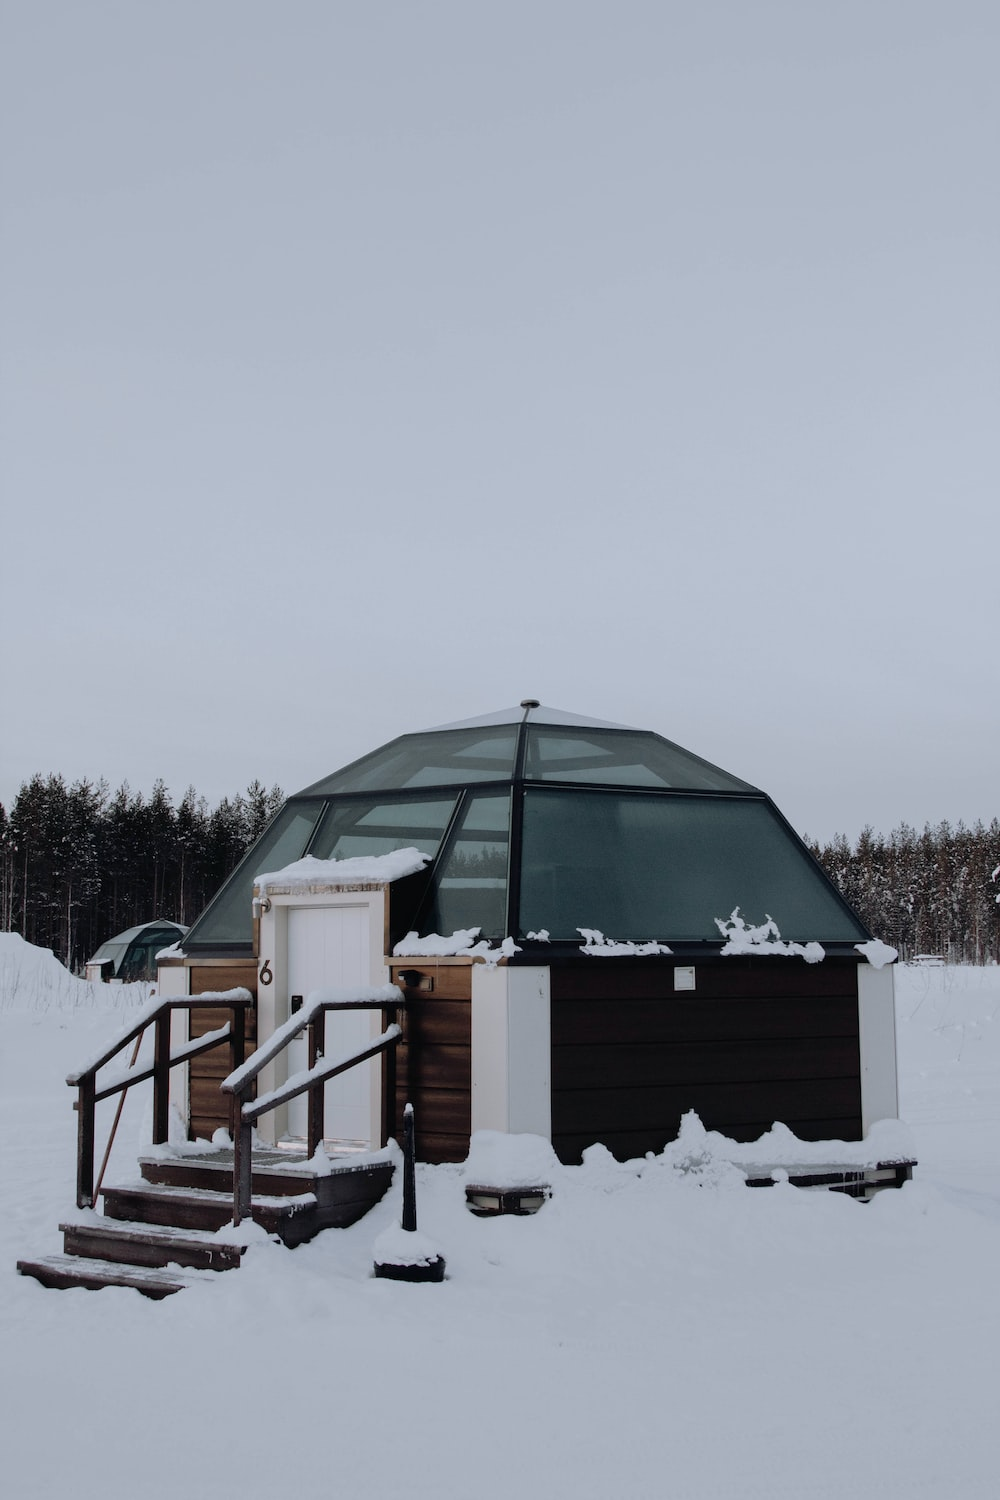 white and green dome tent on snow covered ground